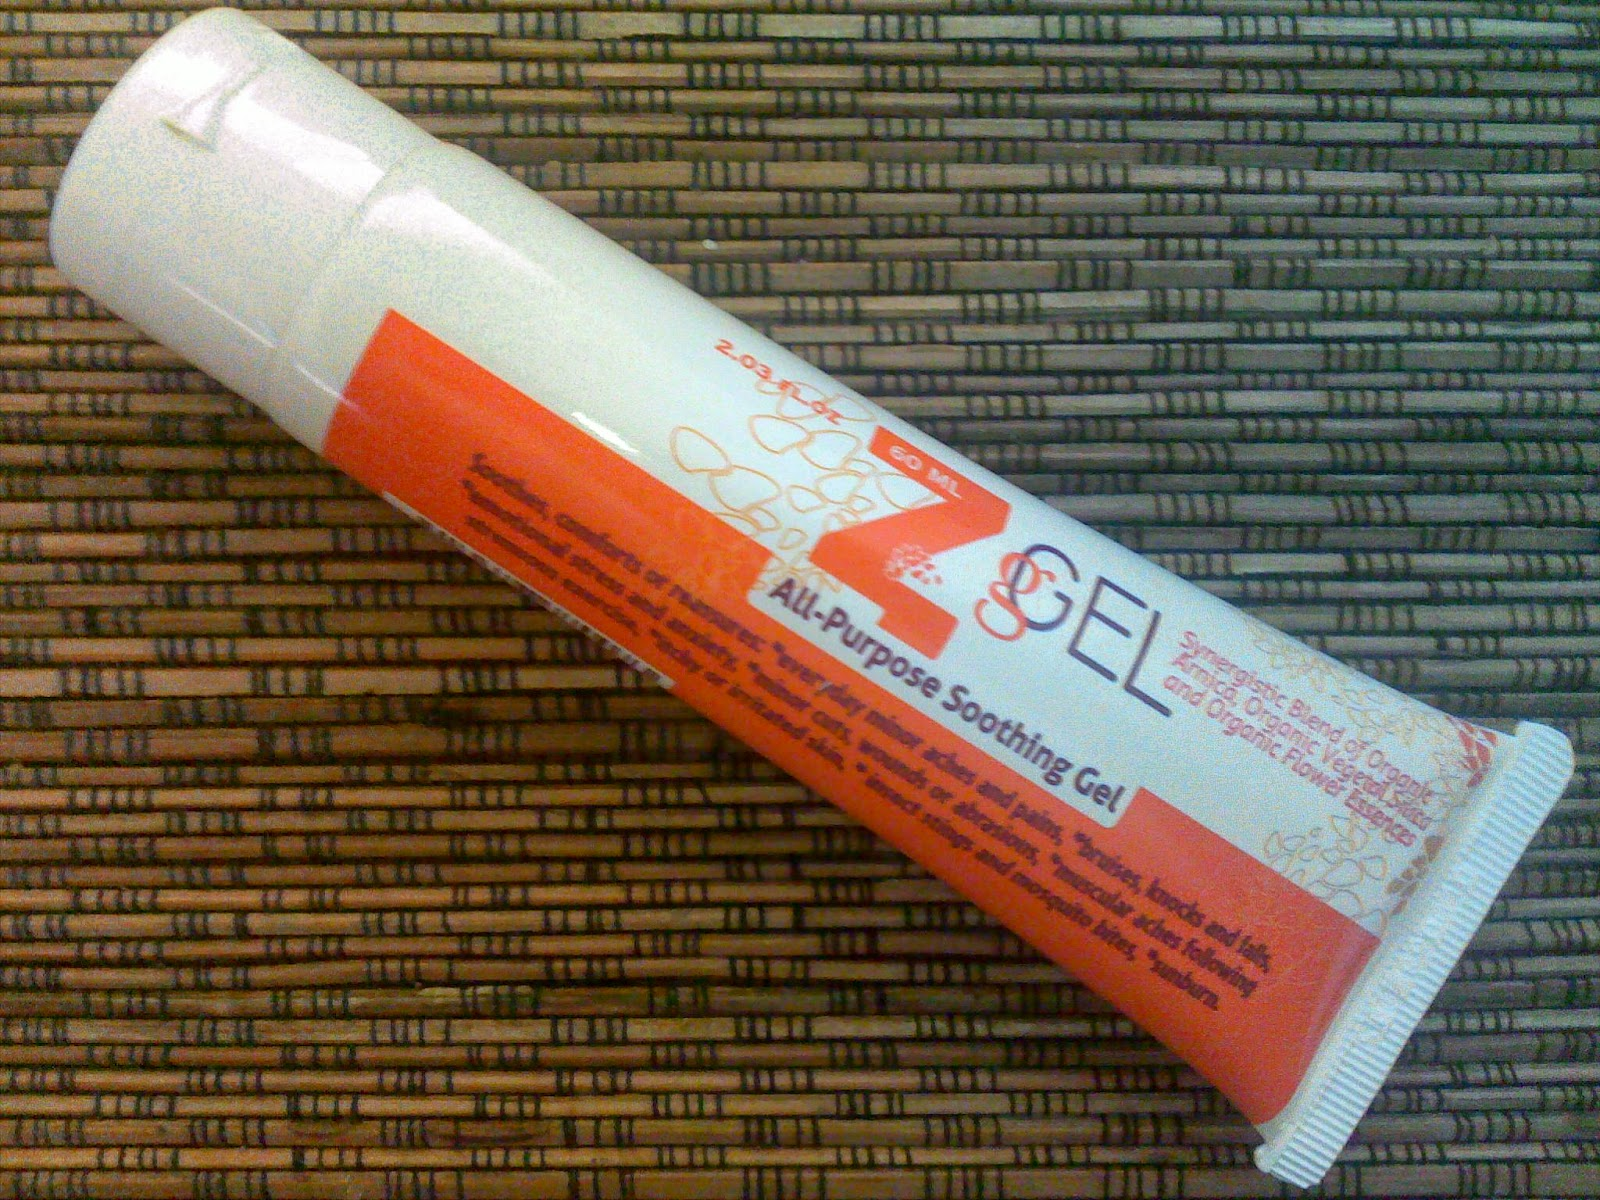 Z-gel all purpose soothing gel